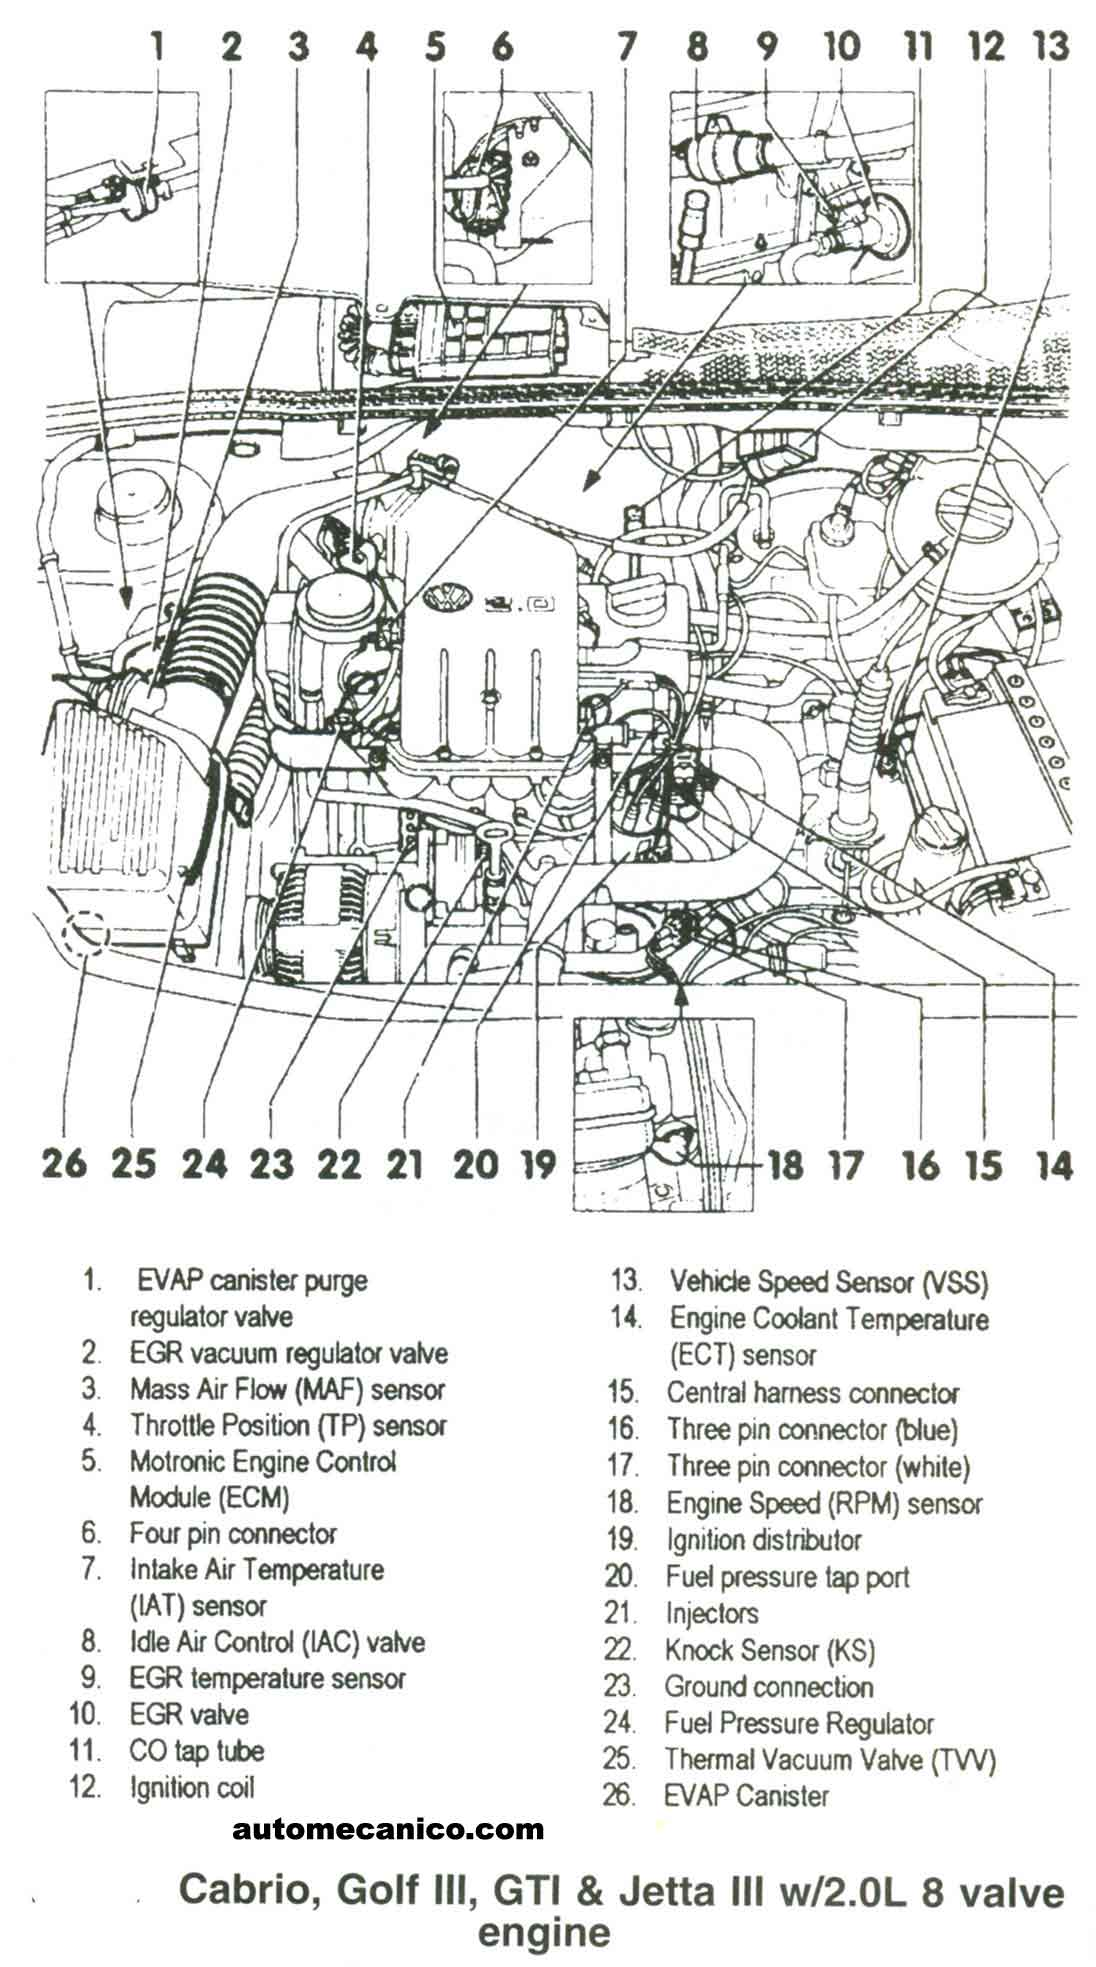 Vw Eurovan Wiring Diagram